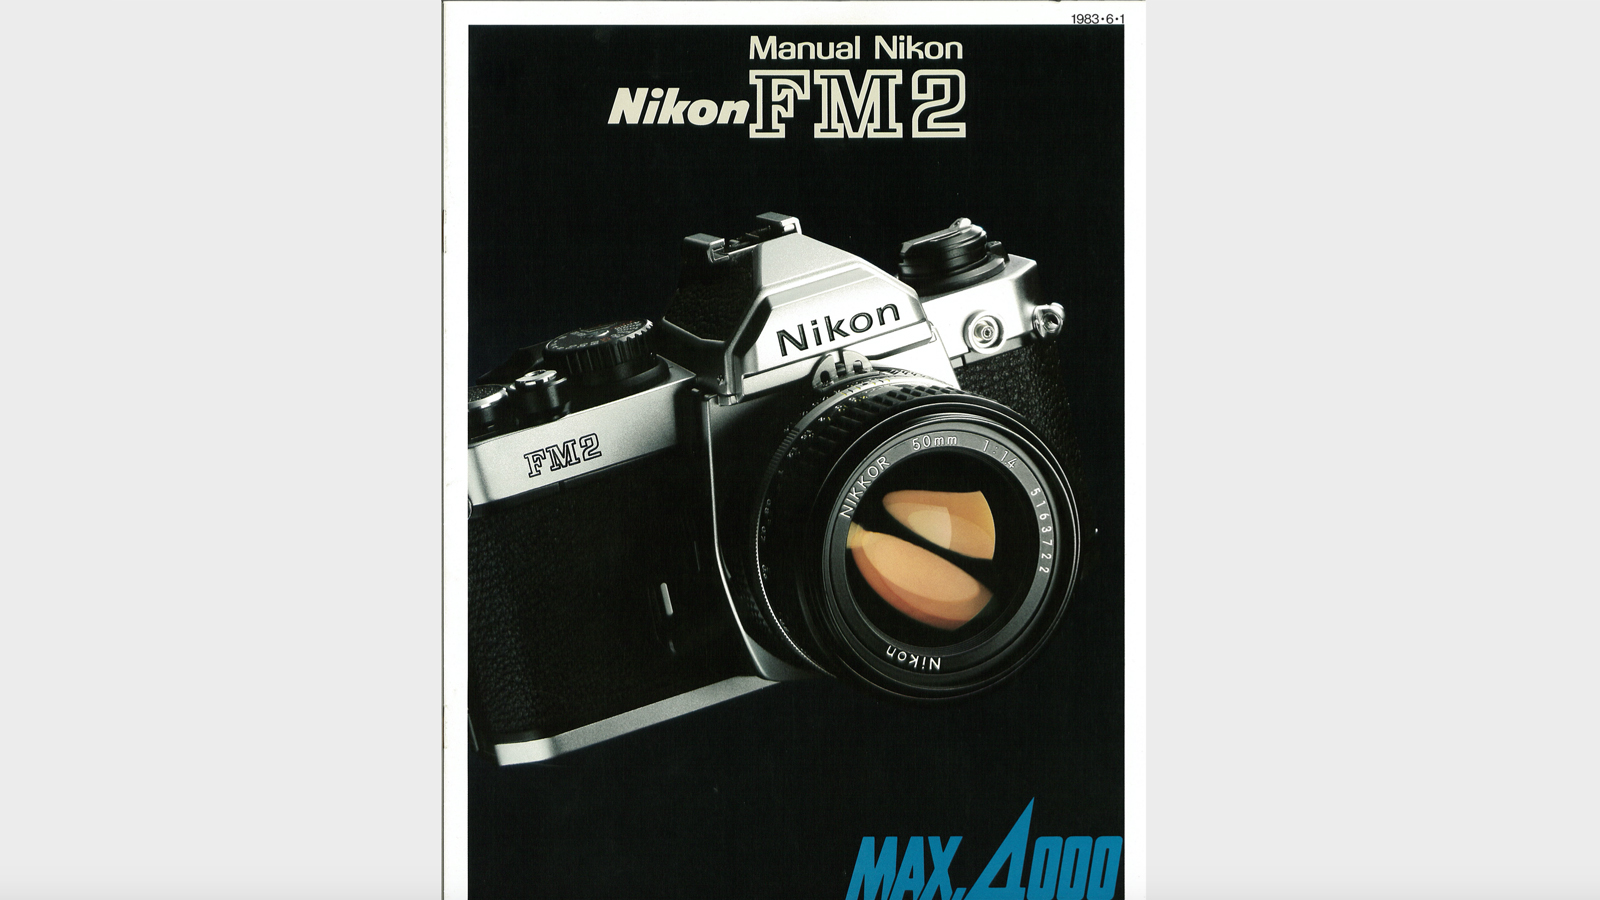 Photos of the Nikon FM2 camera in its manual